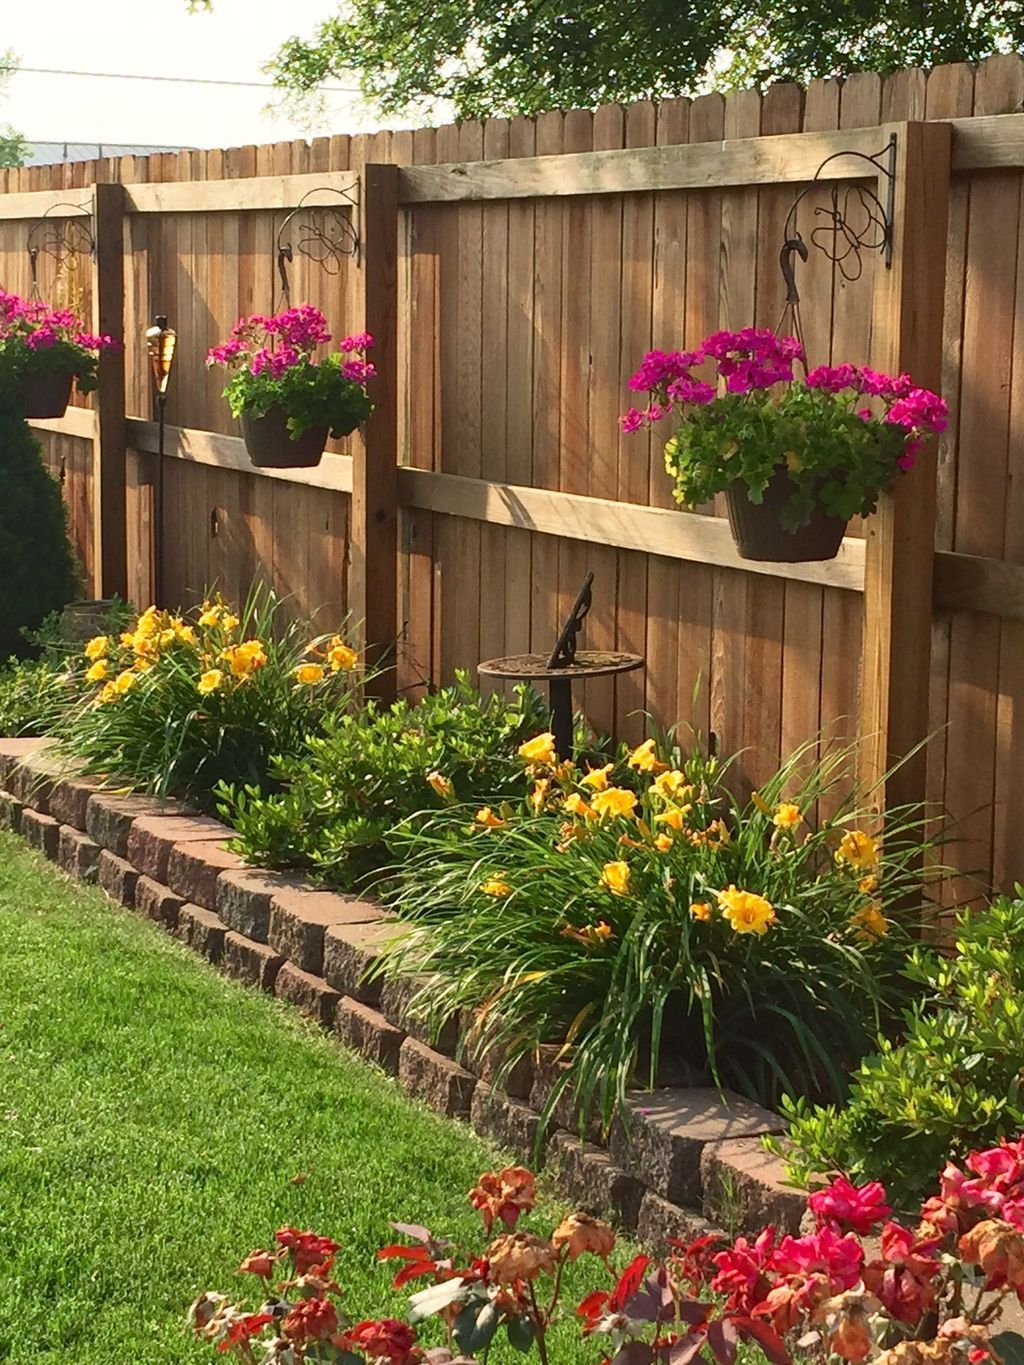 100 Backyard Landscaping Ideas On A Budget For The Home regarding Landscaping Ideas Backyard